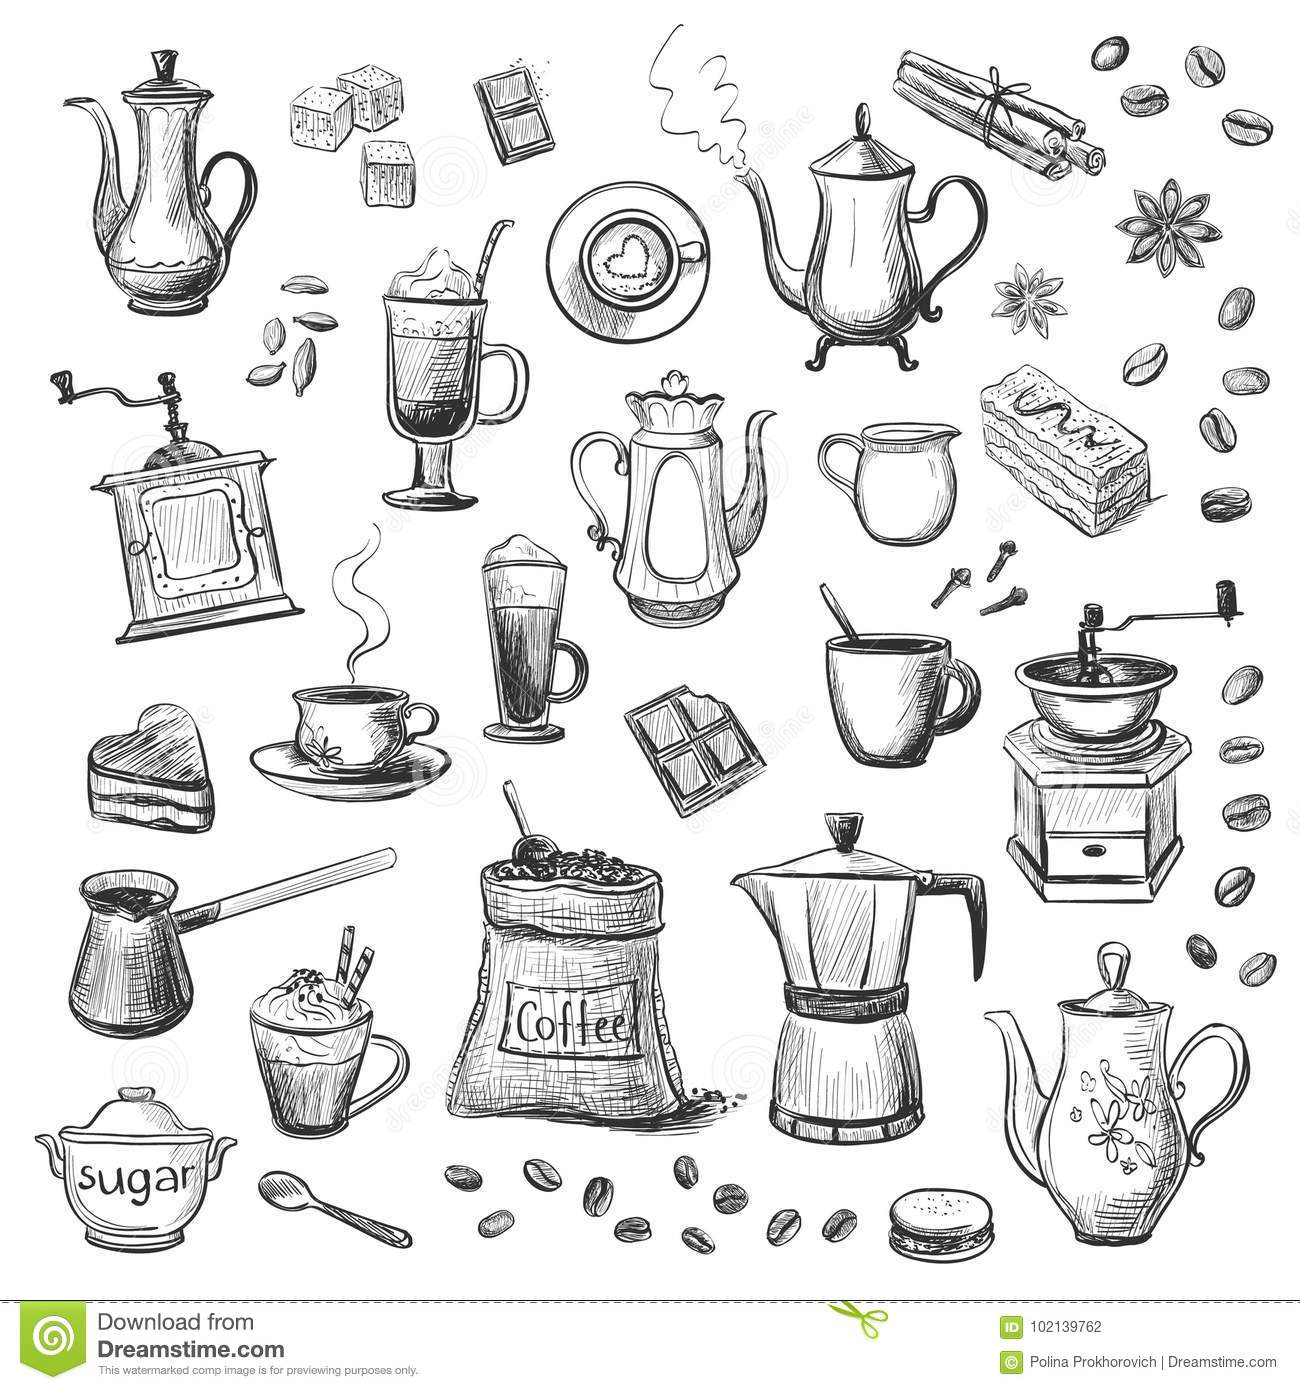 A collection of sketches on the theme of coffee hand drawn